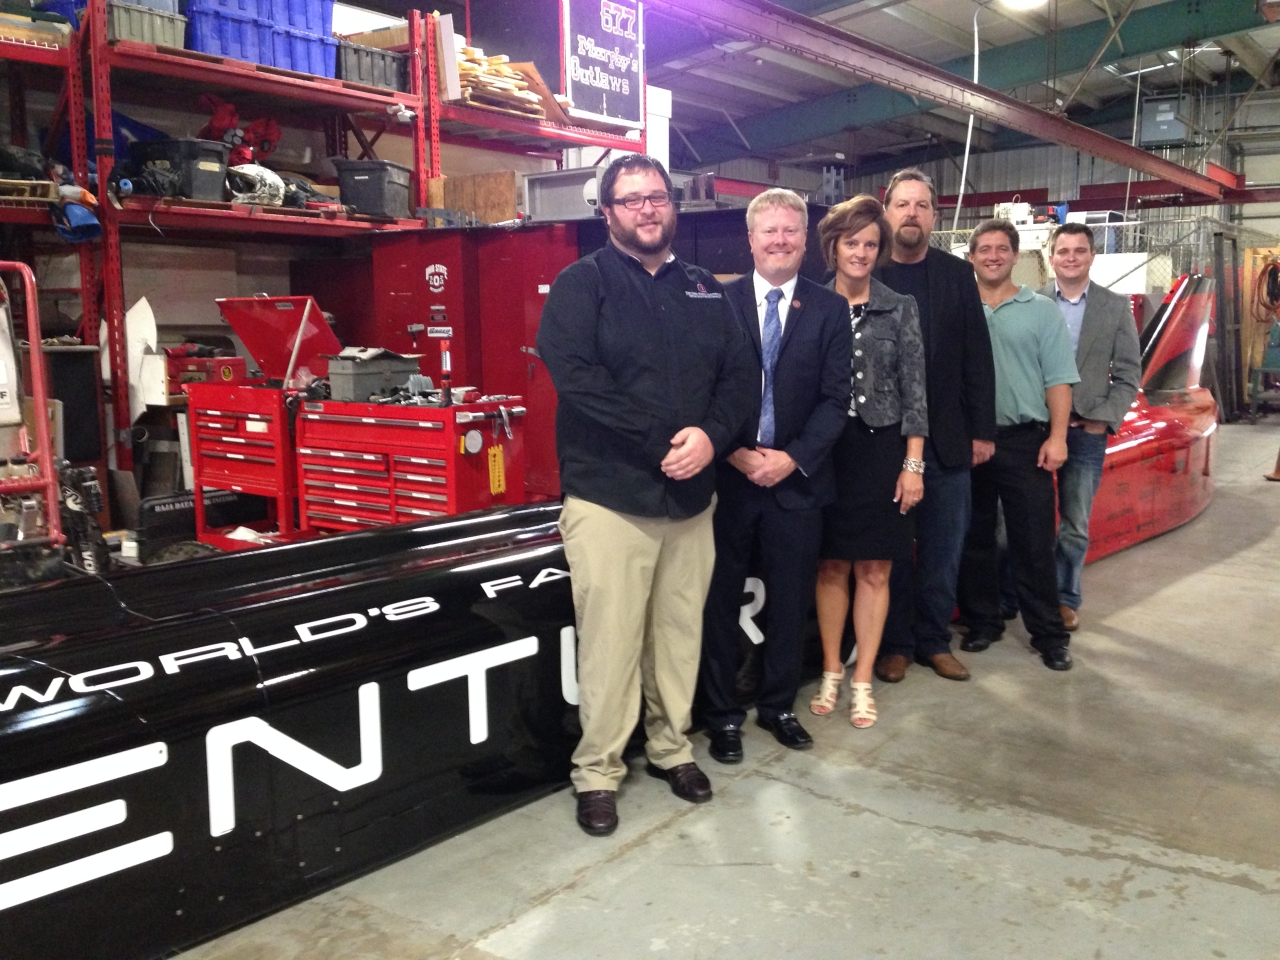 O'Brien tours CAR Technologies in support of alternative fuels